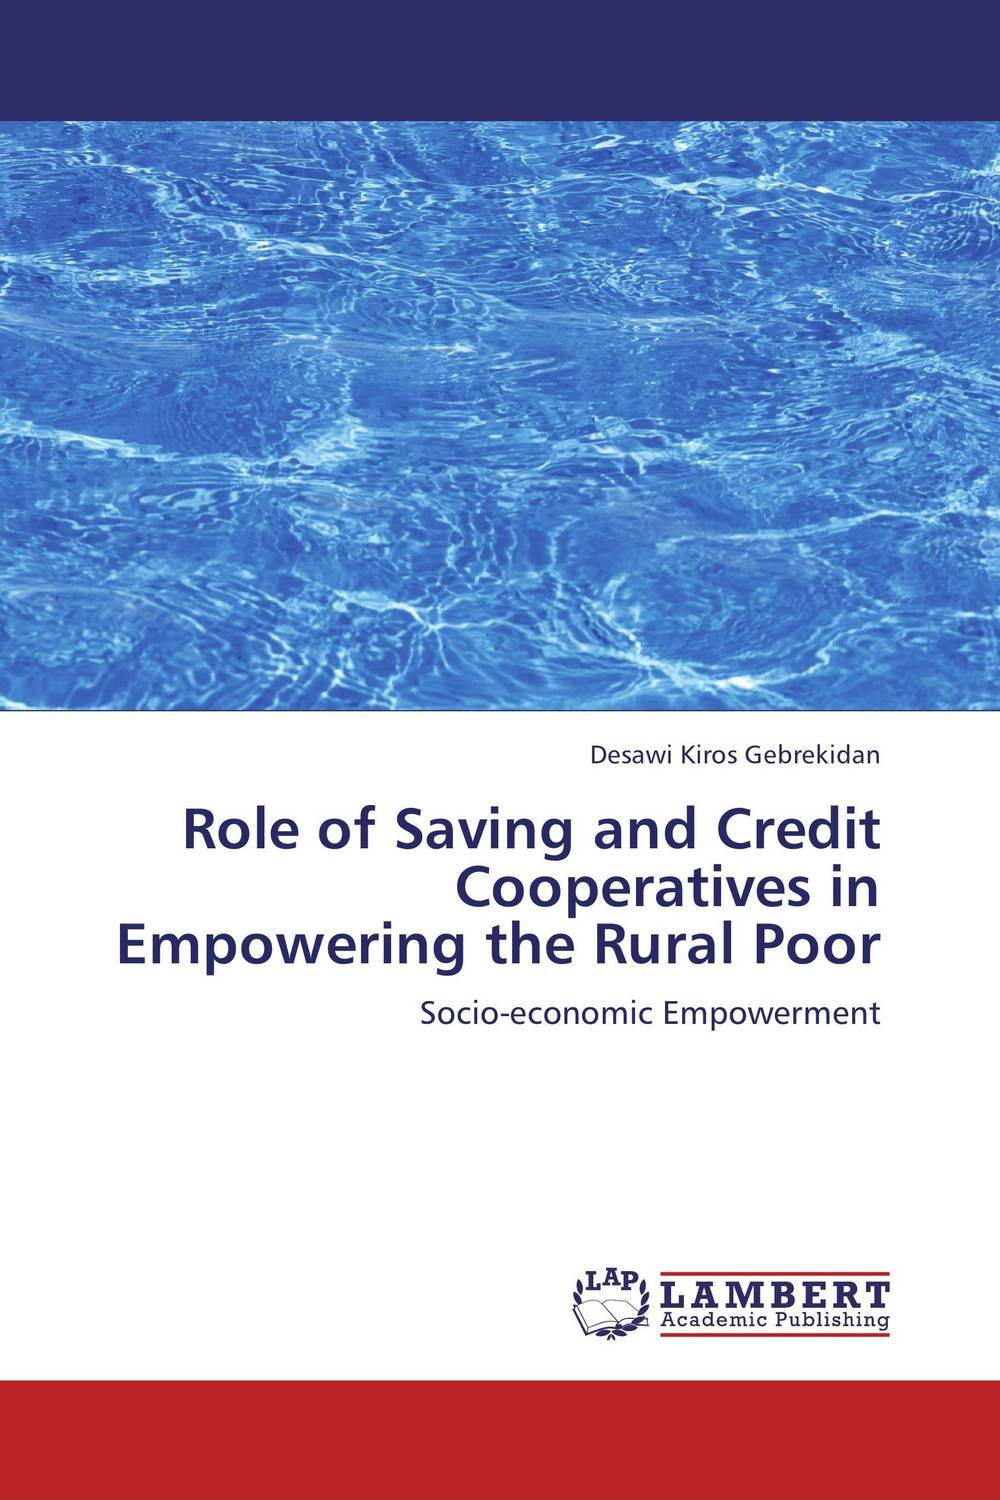 Role of Saving and Credit Cooperatives in Empowering the Rural Poor the role of cooperatives in community development